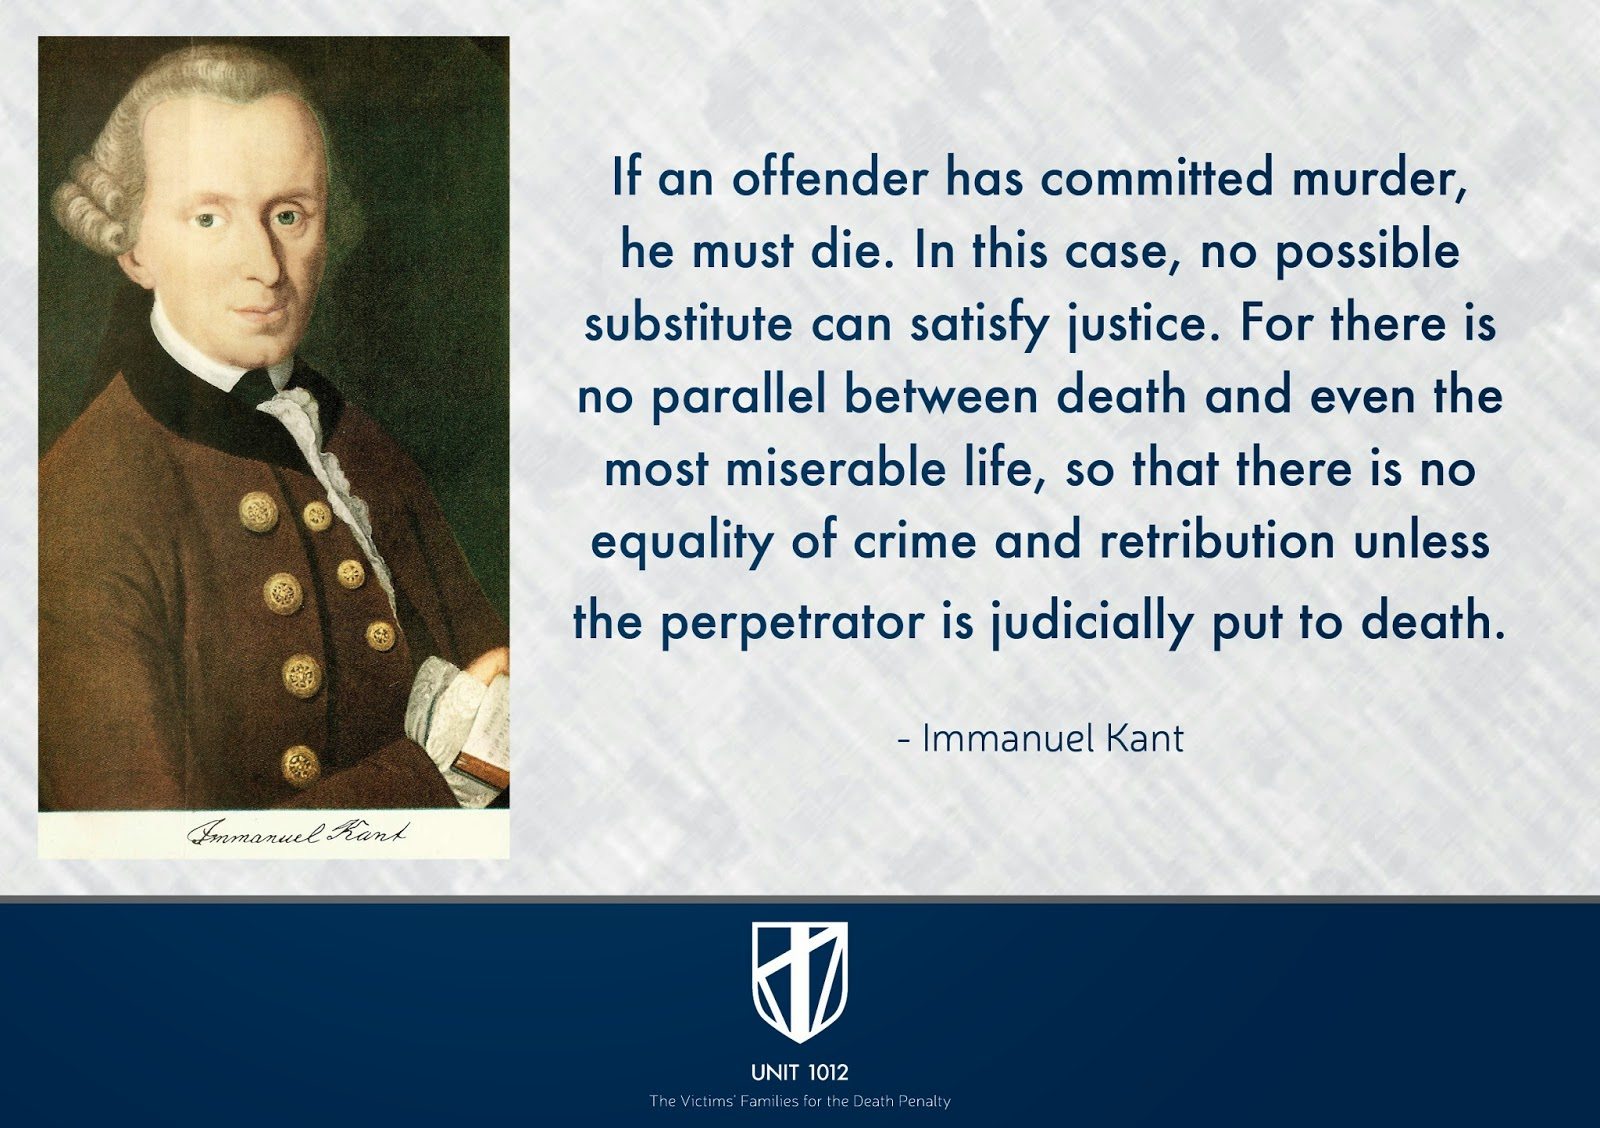 Quotes About The Death Penalty Unit 1012 The Victims' Families For The Death Penalty. Immanuel